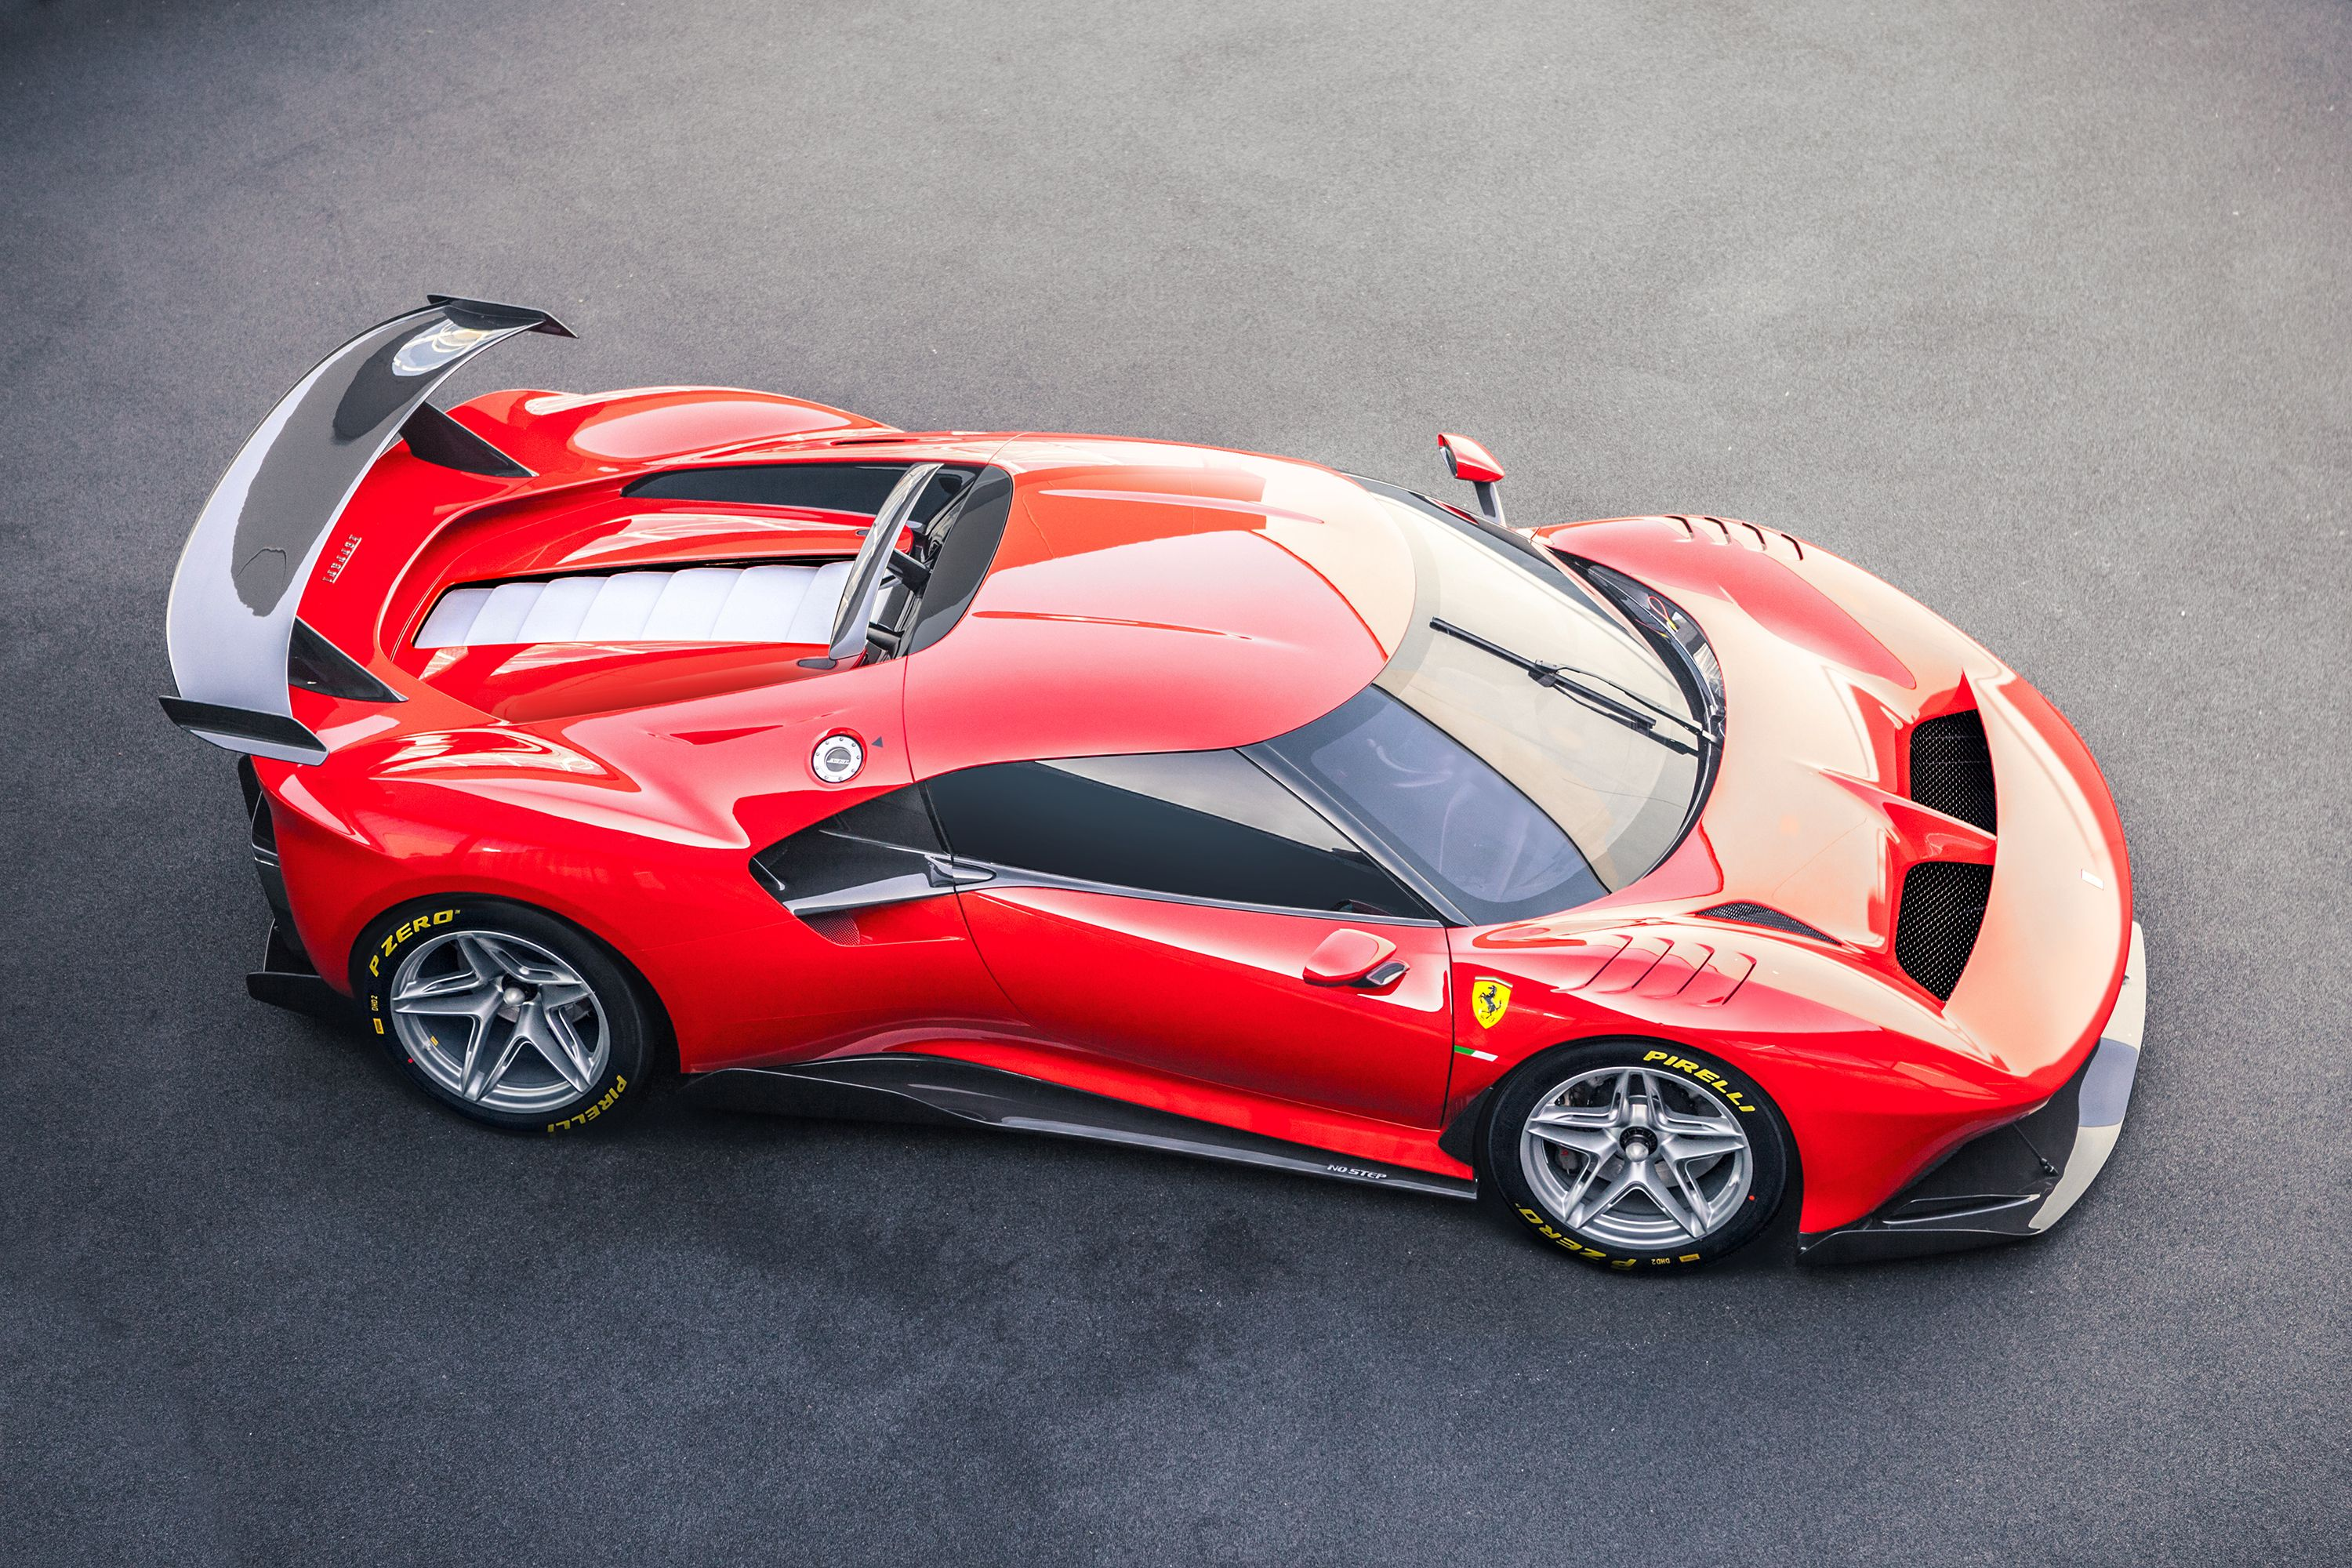 Twelve Crazy One-Offs From Ferrari Special Projects